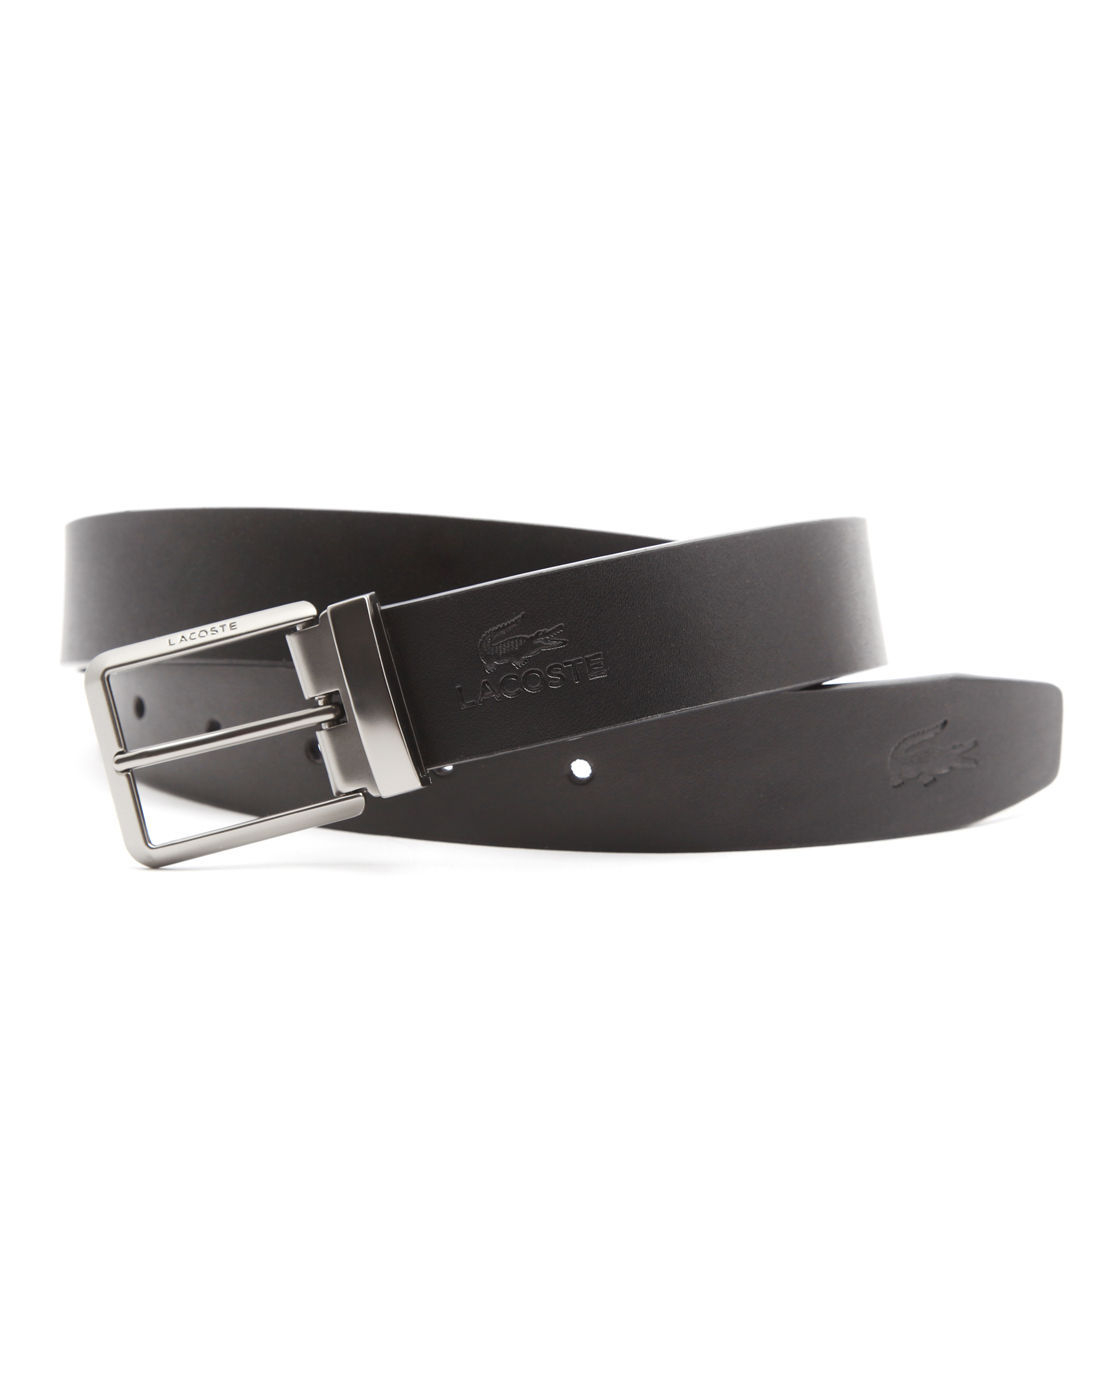 Lacoste Black And Grey Leather Belt With Double Buckle Set In Black For Men Lyst